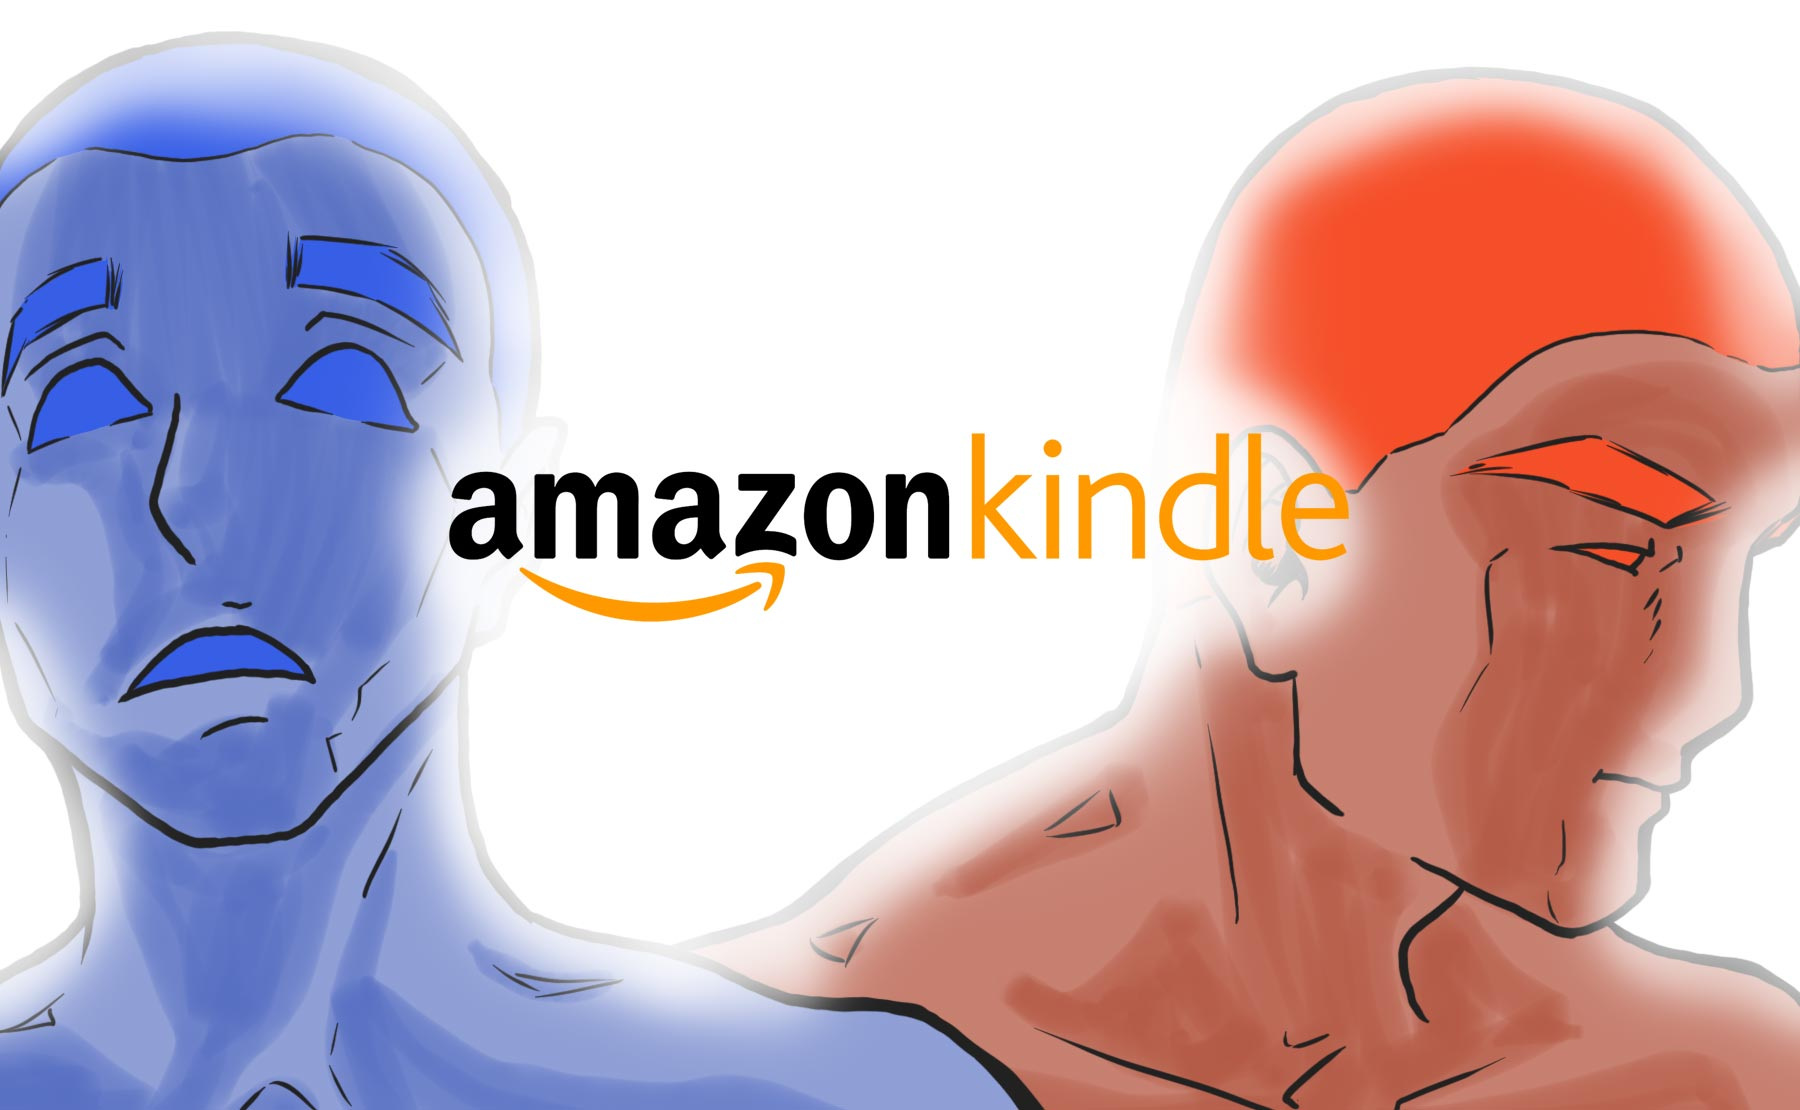 kindle-featured-image